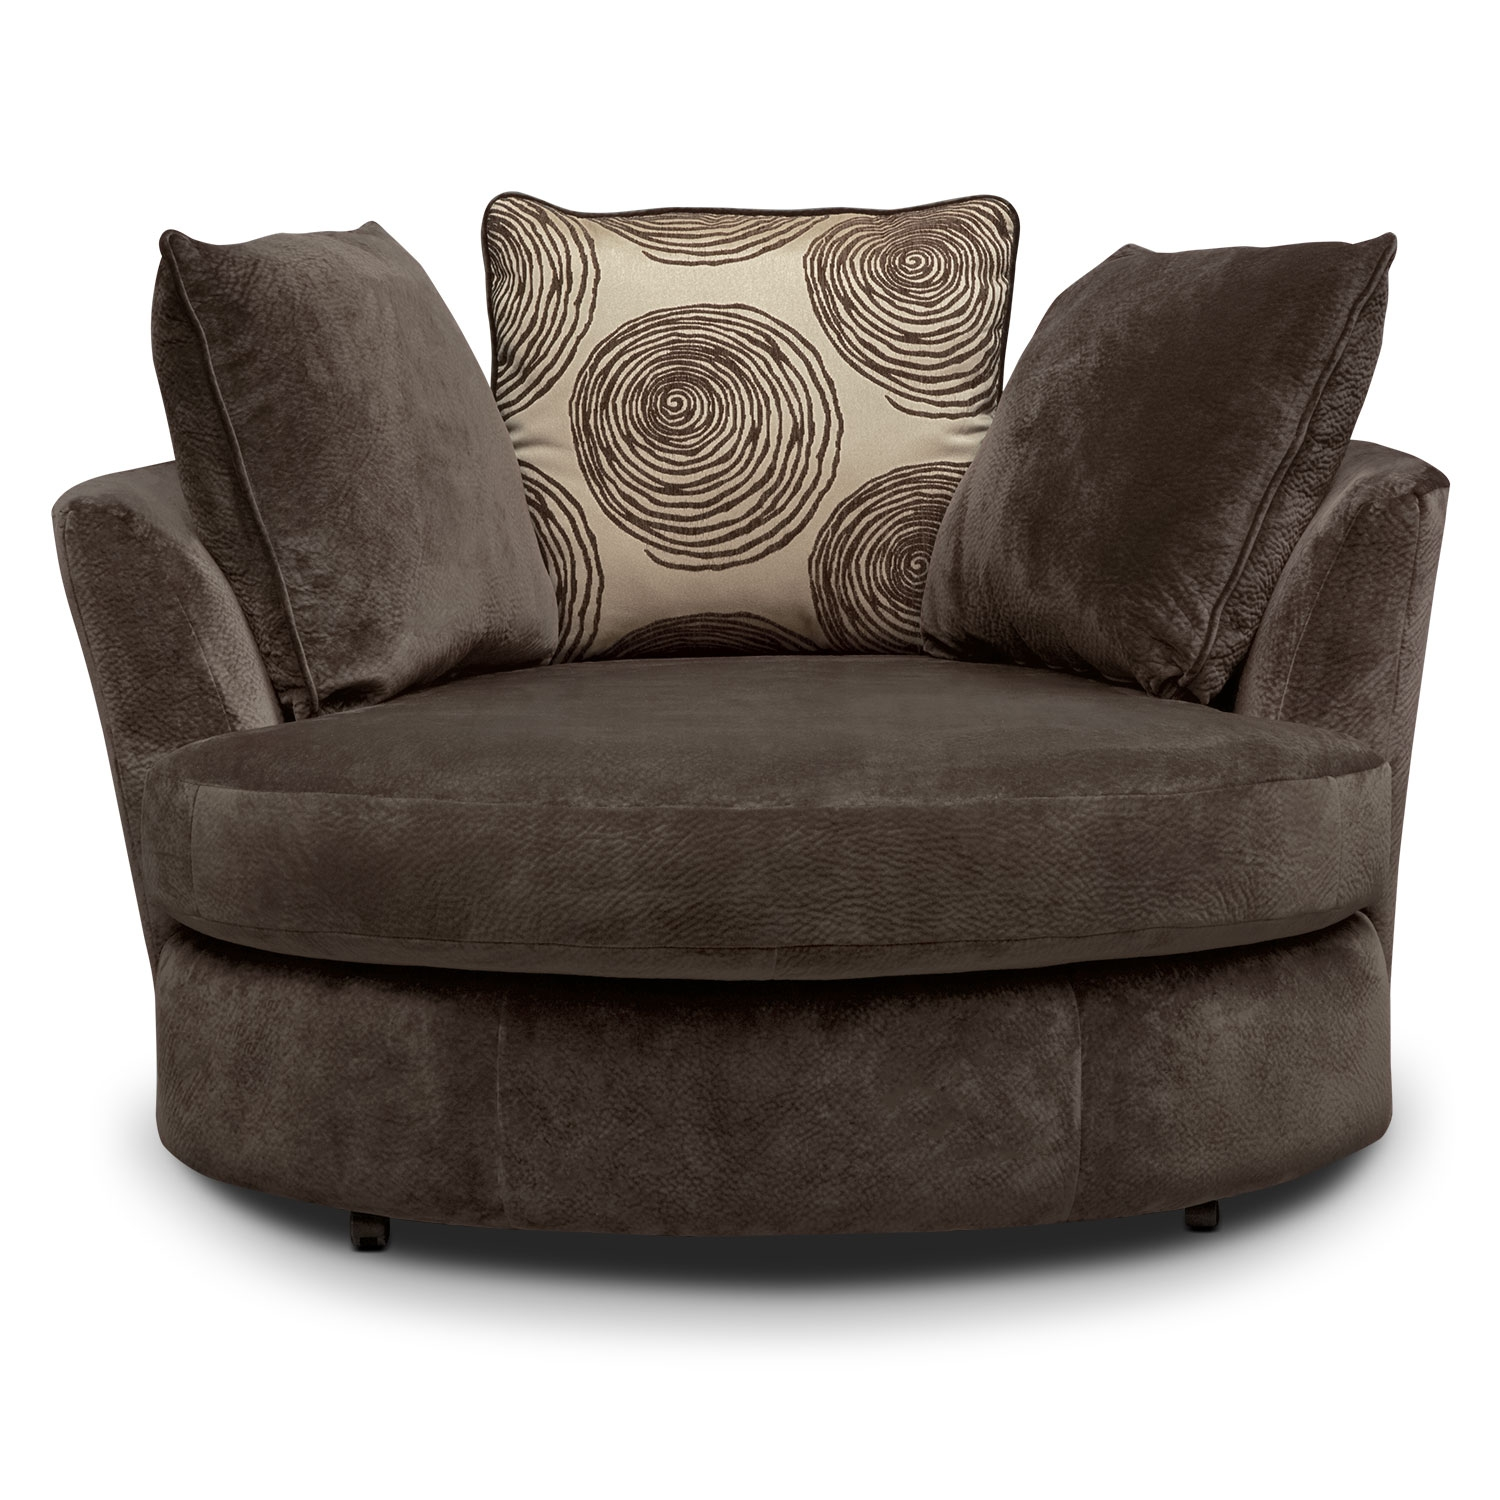 Cordelle Swivel Chair Chocolate Value City Furniture With Regard To Sofa With Swivel Chair (Image 7 of 15)